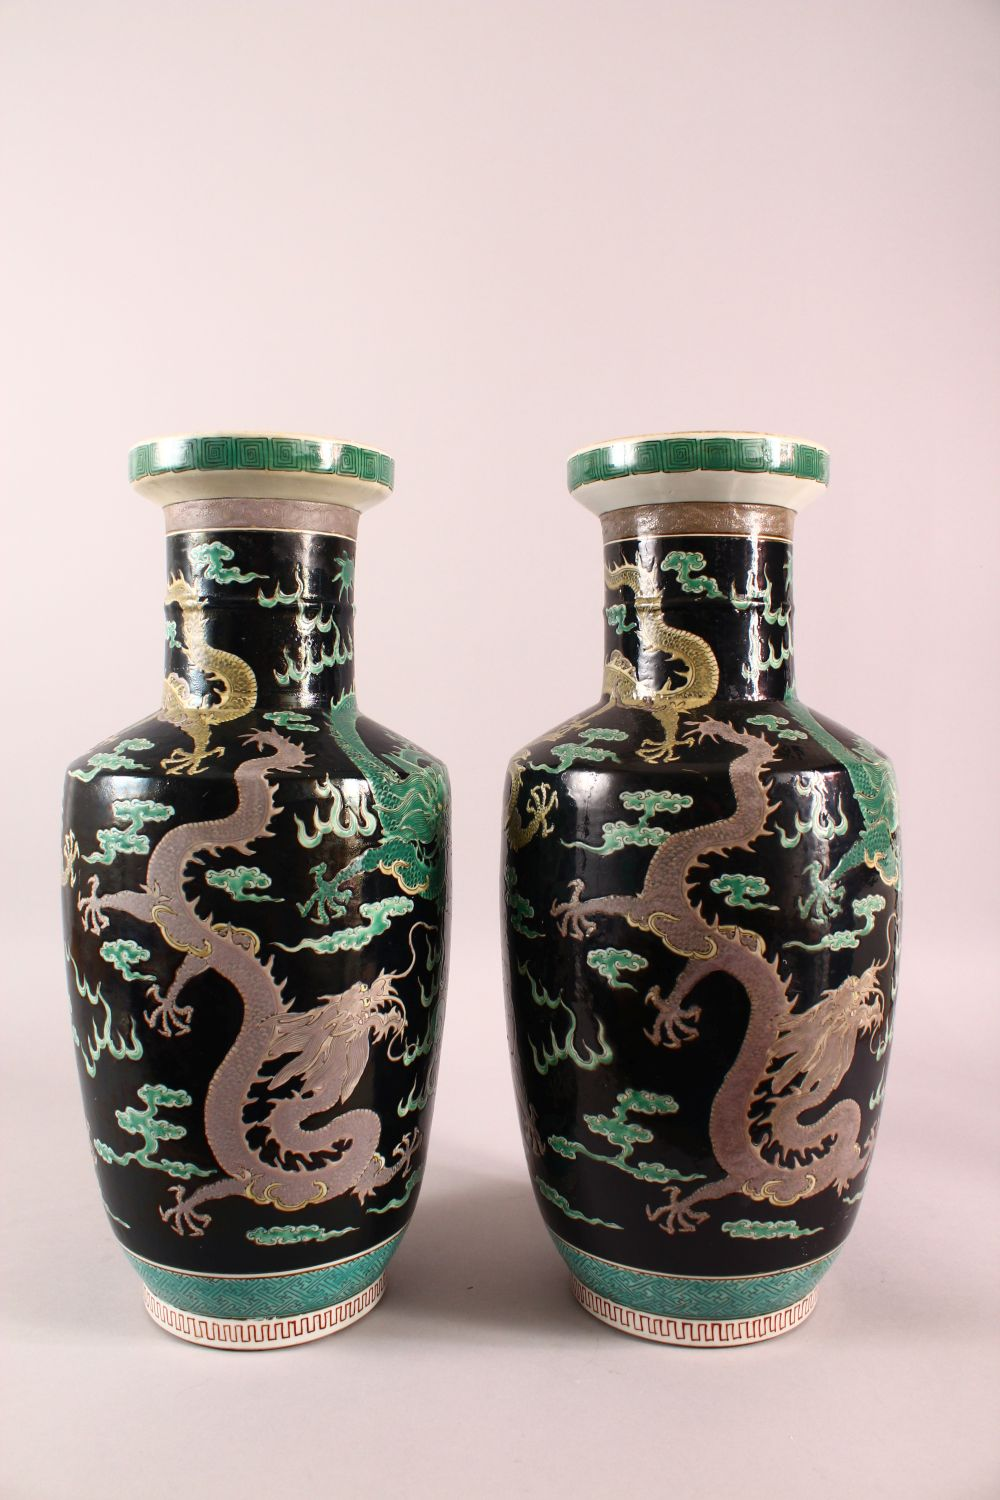 A LARGE PAIR OF CHINESE FAMILLE NOIR PORCELAIN DRAGON VASES, each vase with a black ground depicting - Image 4 of 13